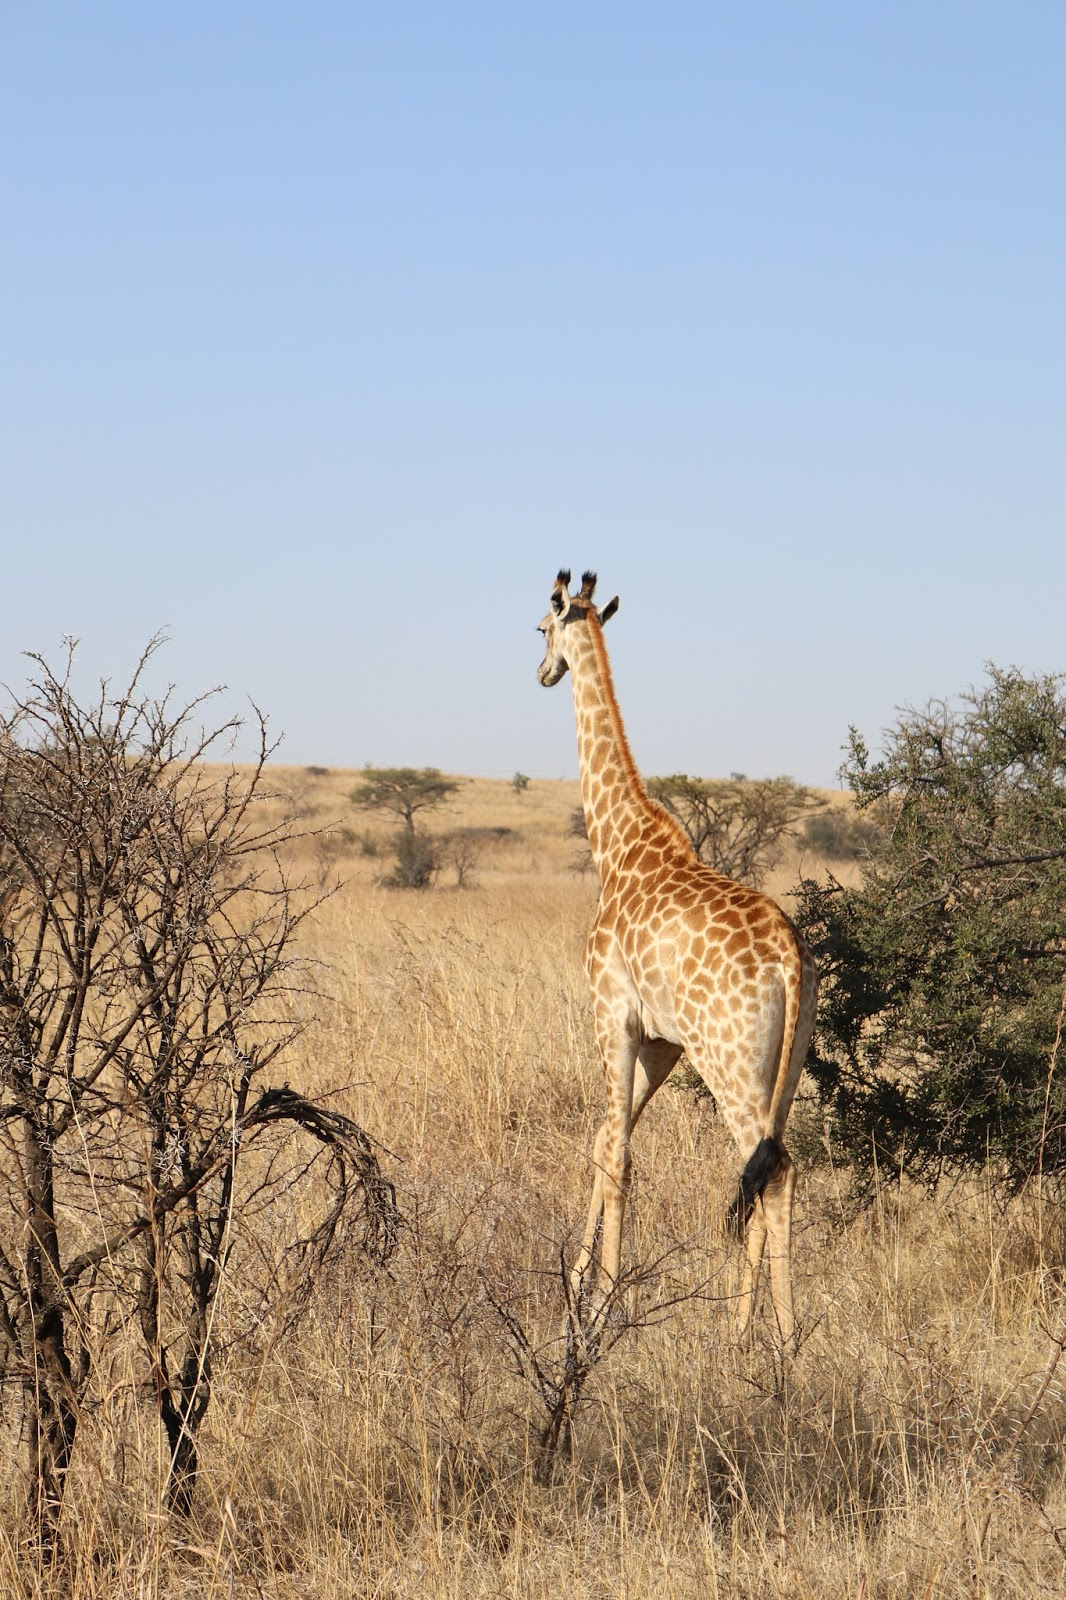 Giraffe in the Nambiti Game Reserve, South Africa